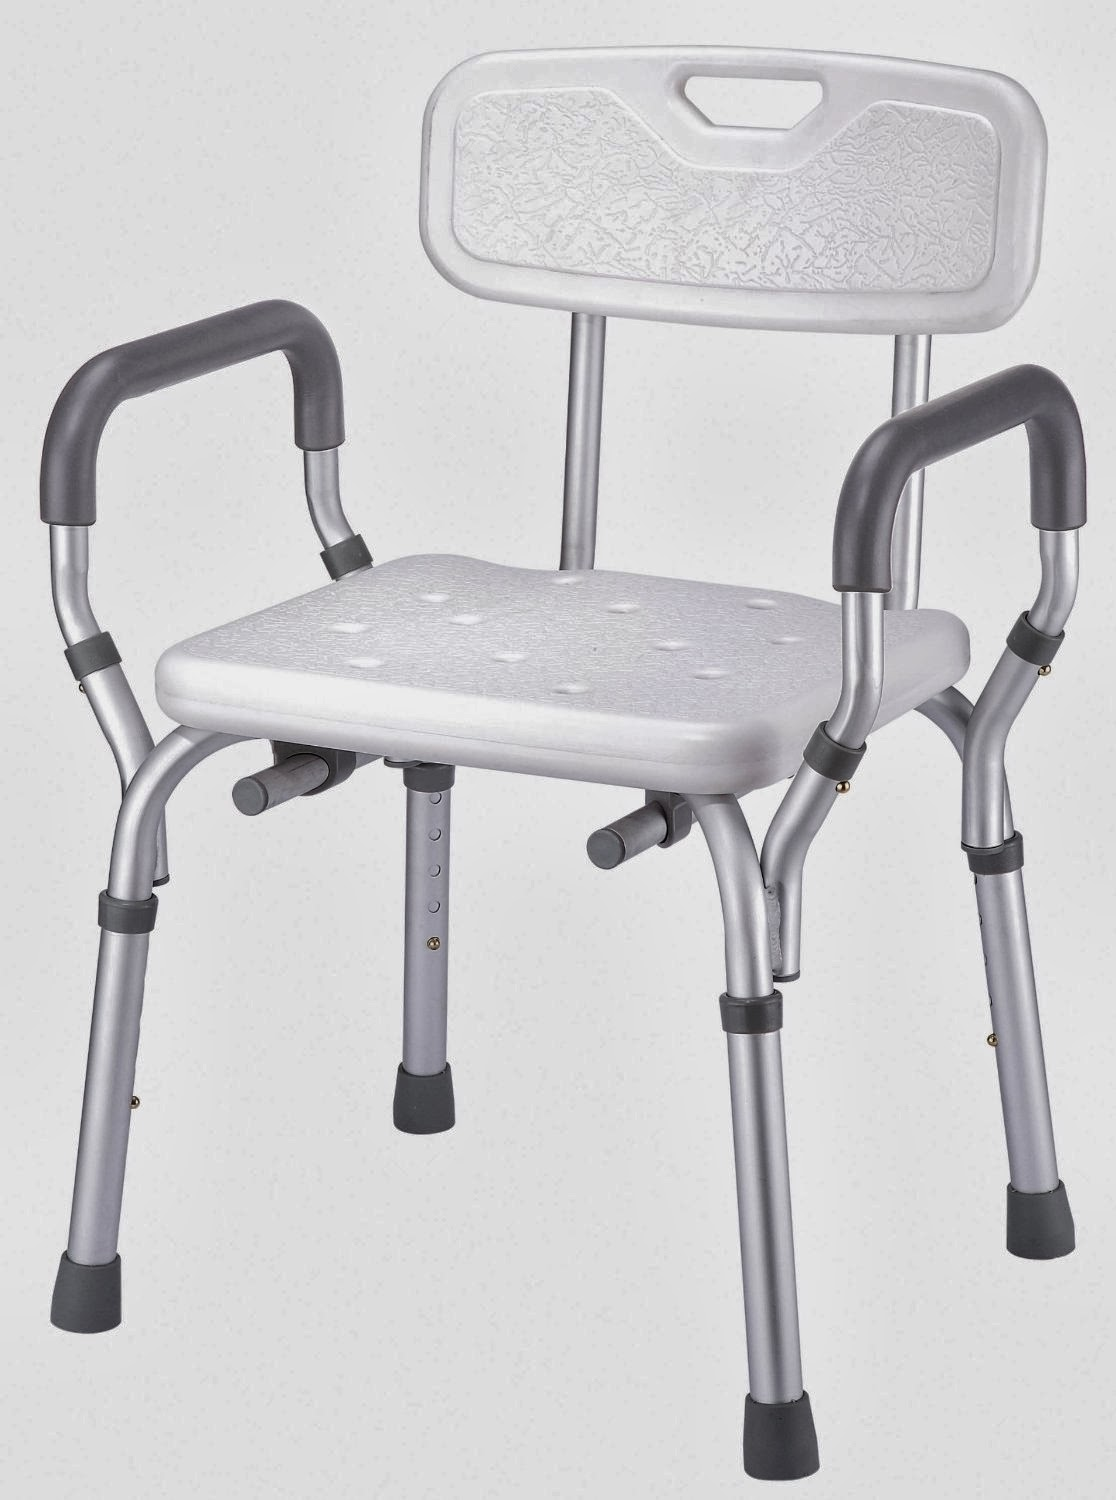 drive shower chair weight limit small folding beach chairs uk great ideas bathroom bench